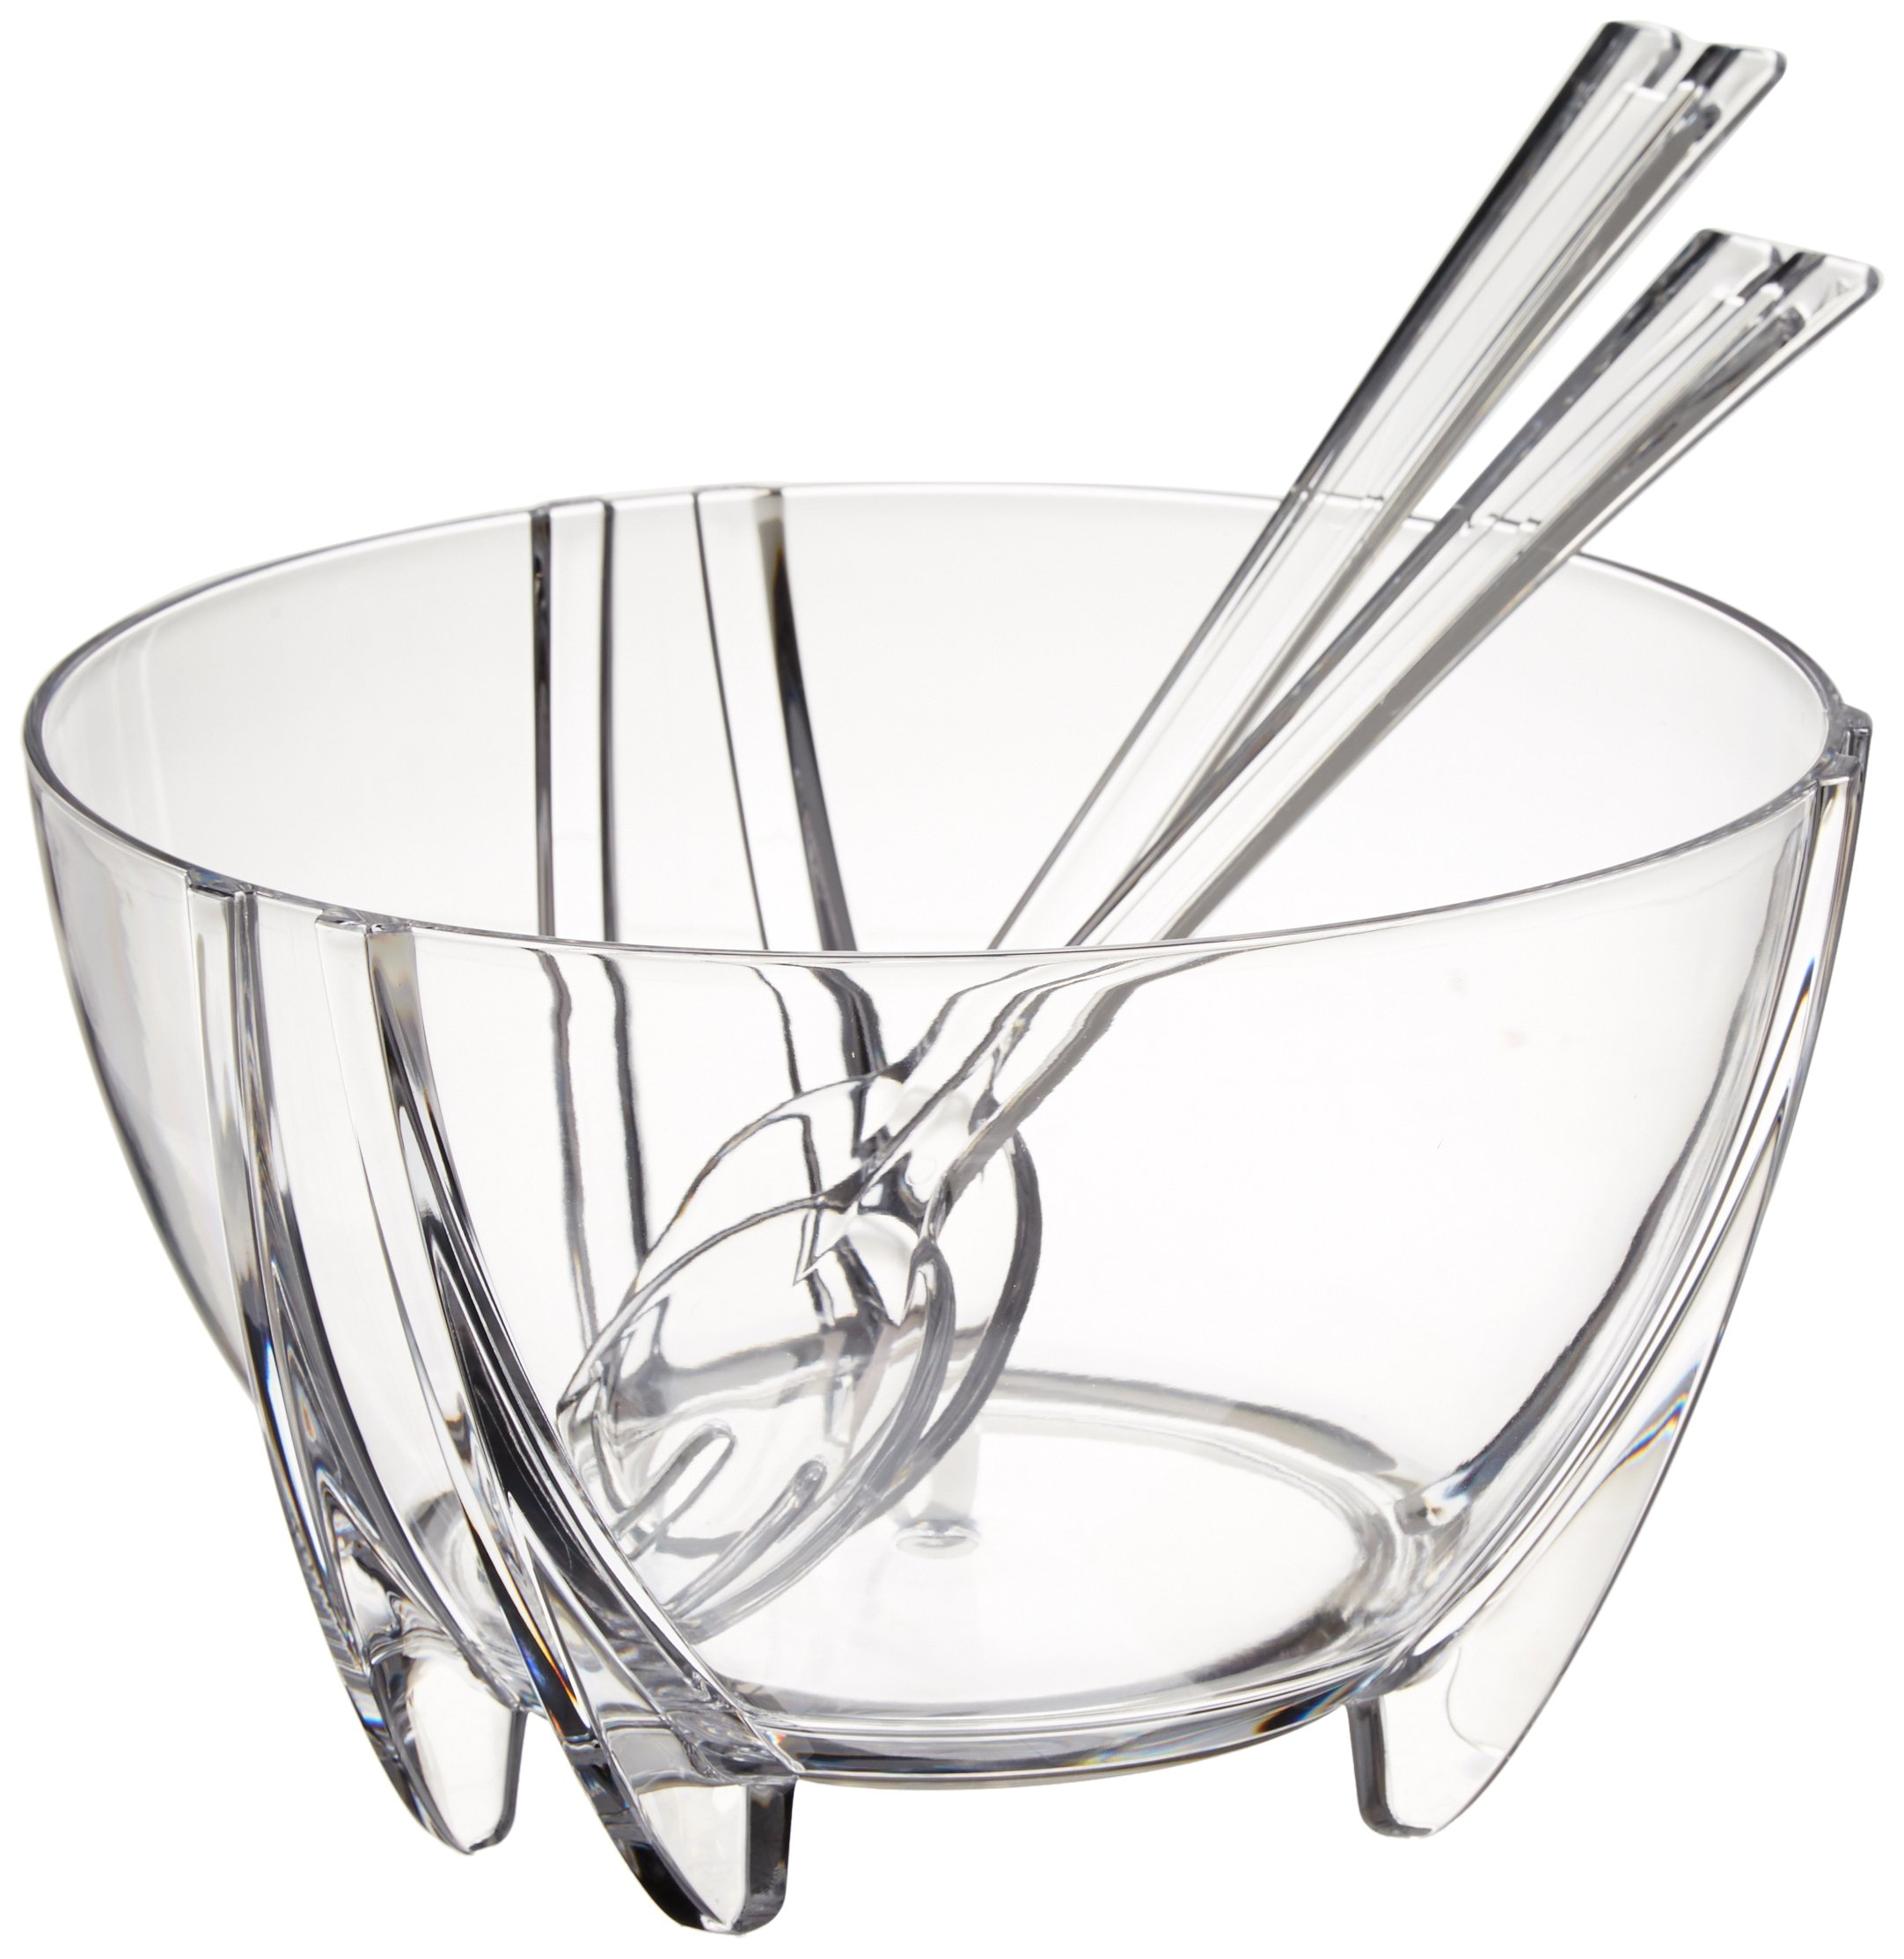 Prodyne Acrylic Salad Bowl with Servers, Clear